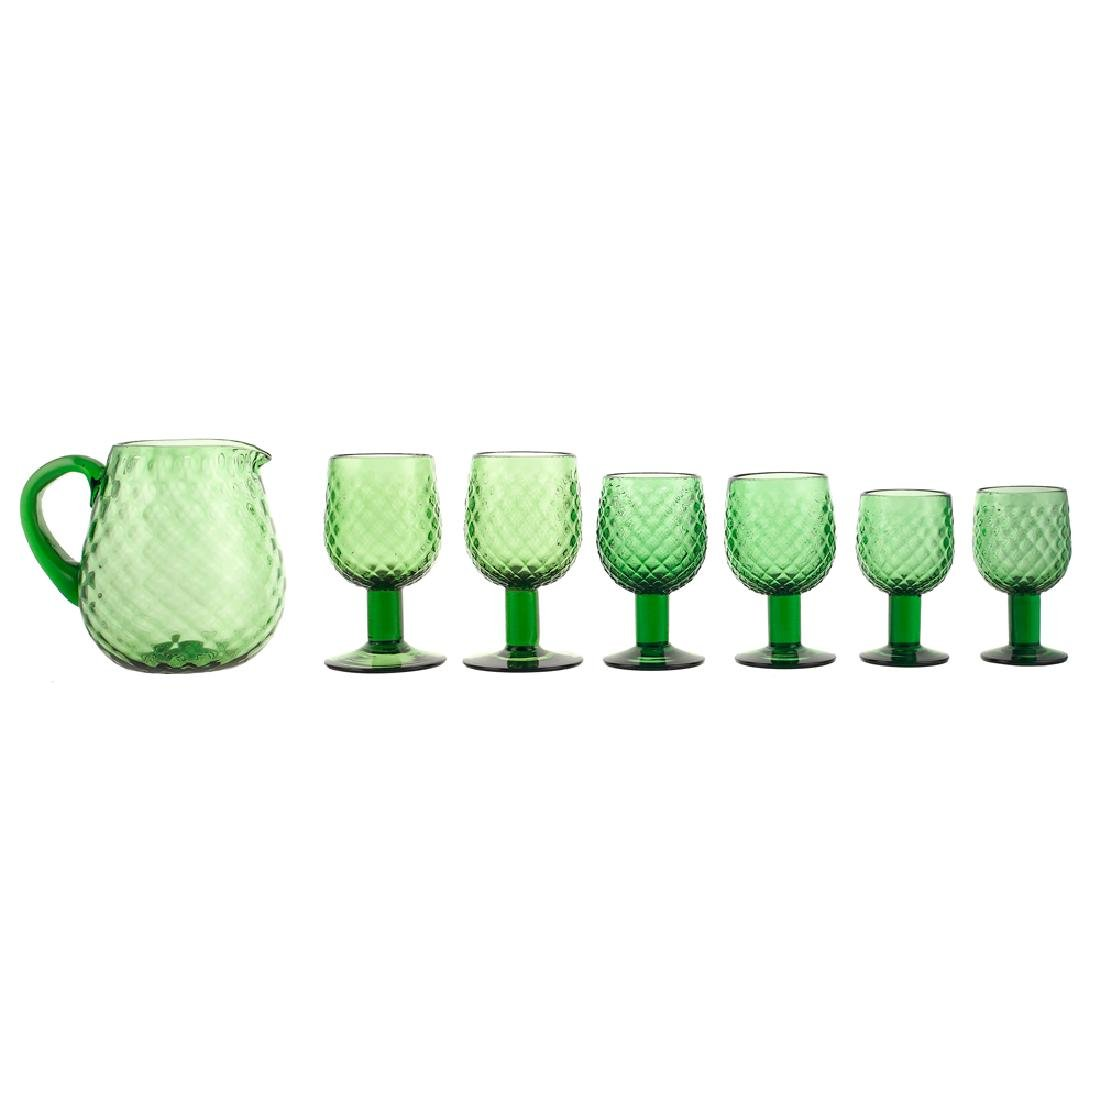 A green glass calice service 20th century